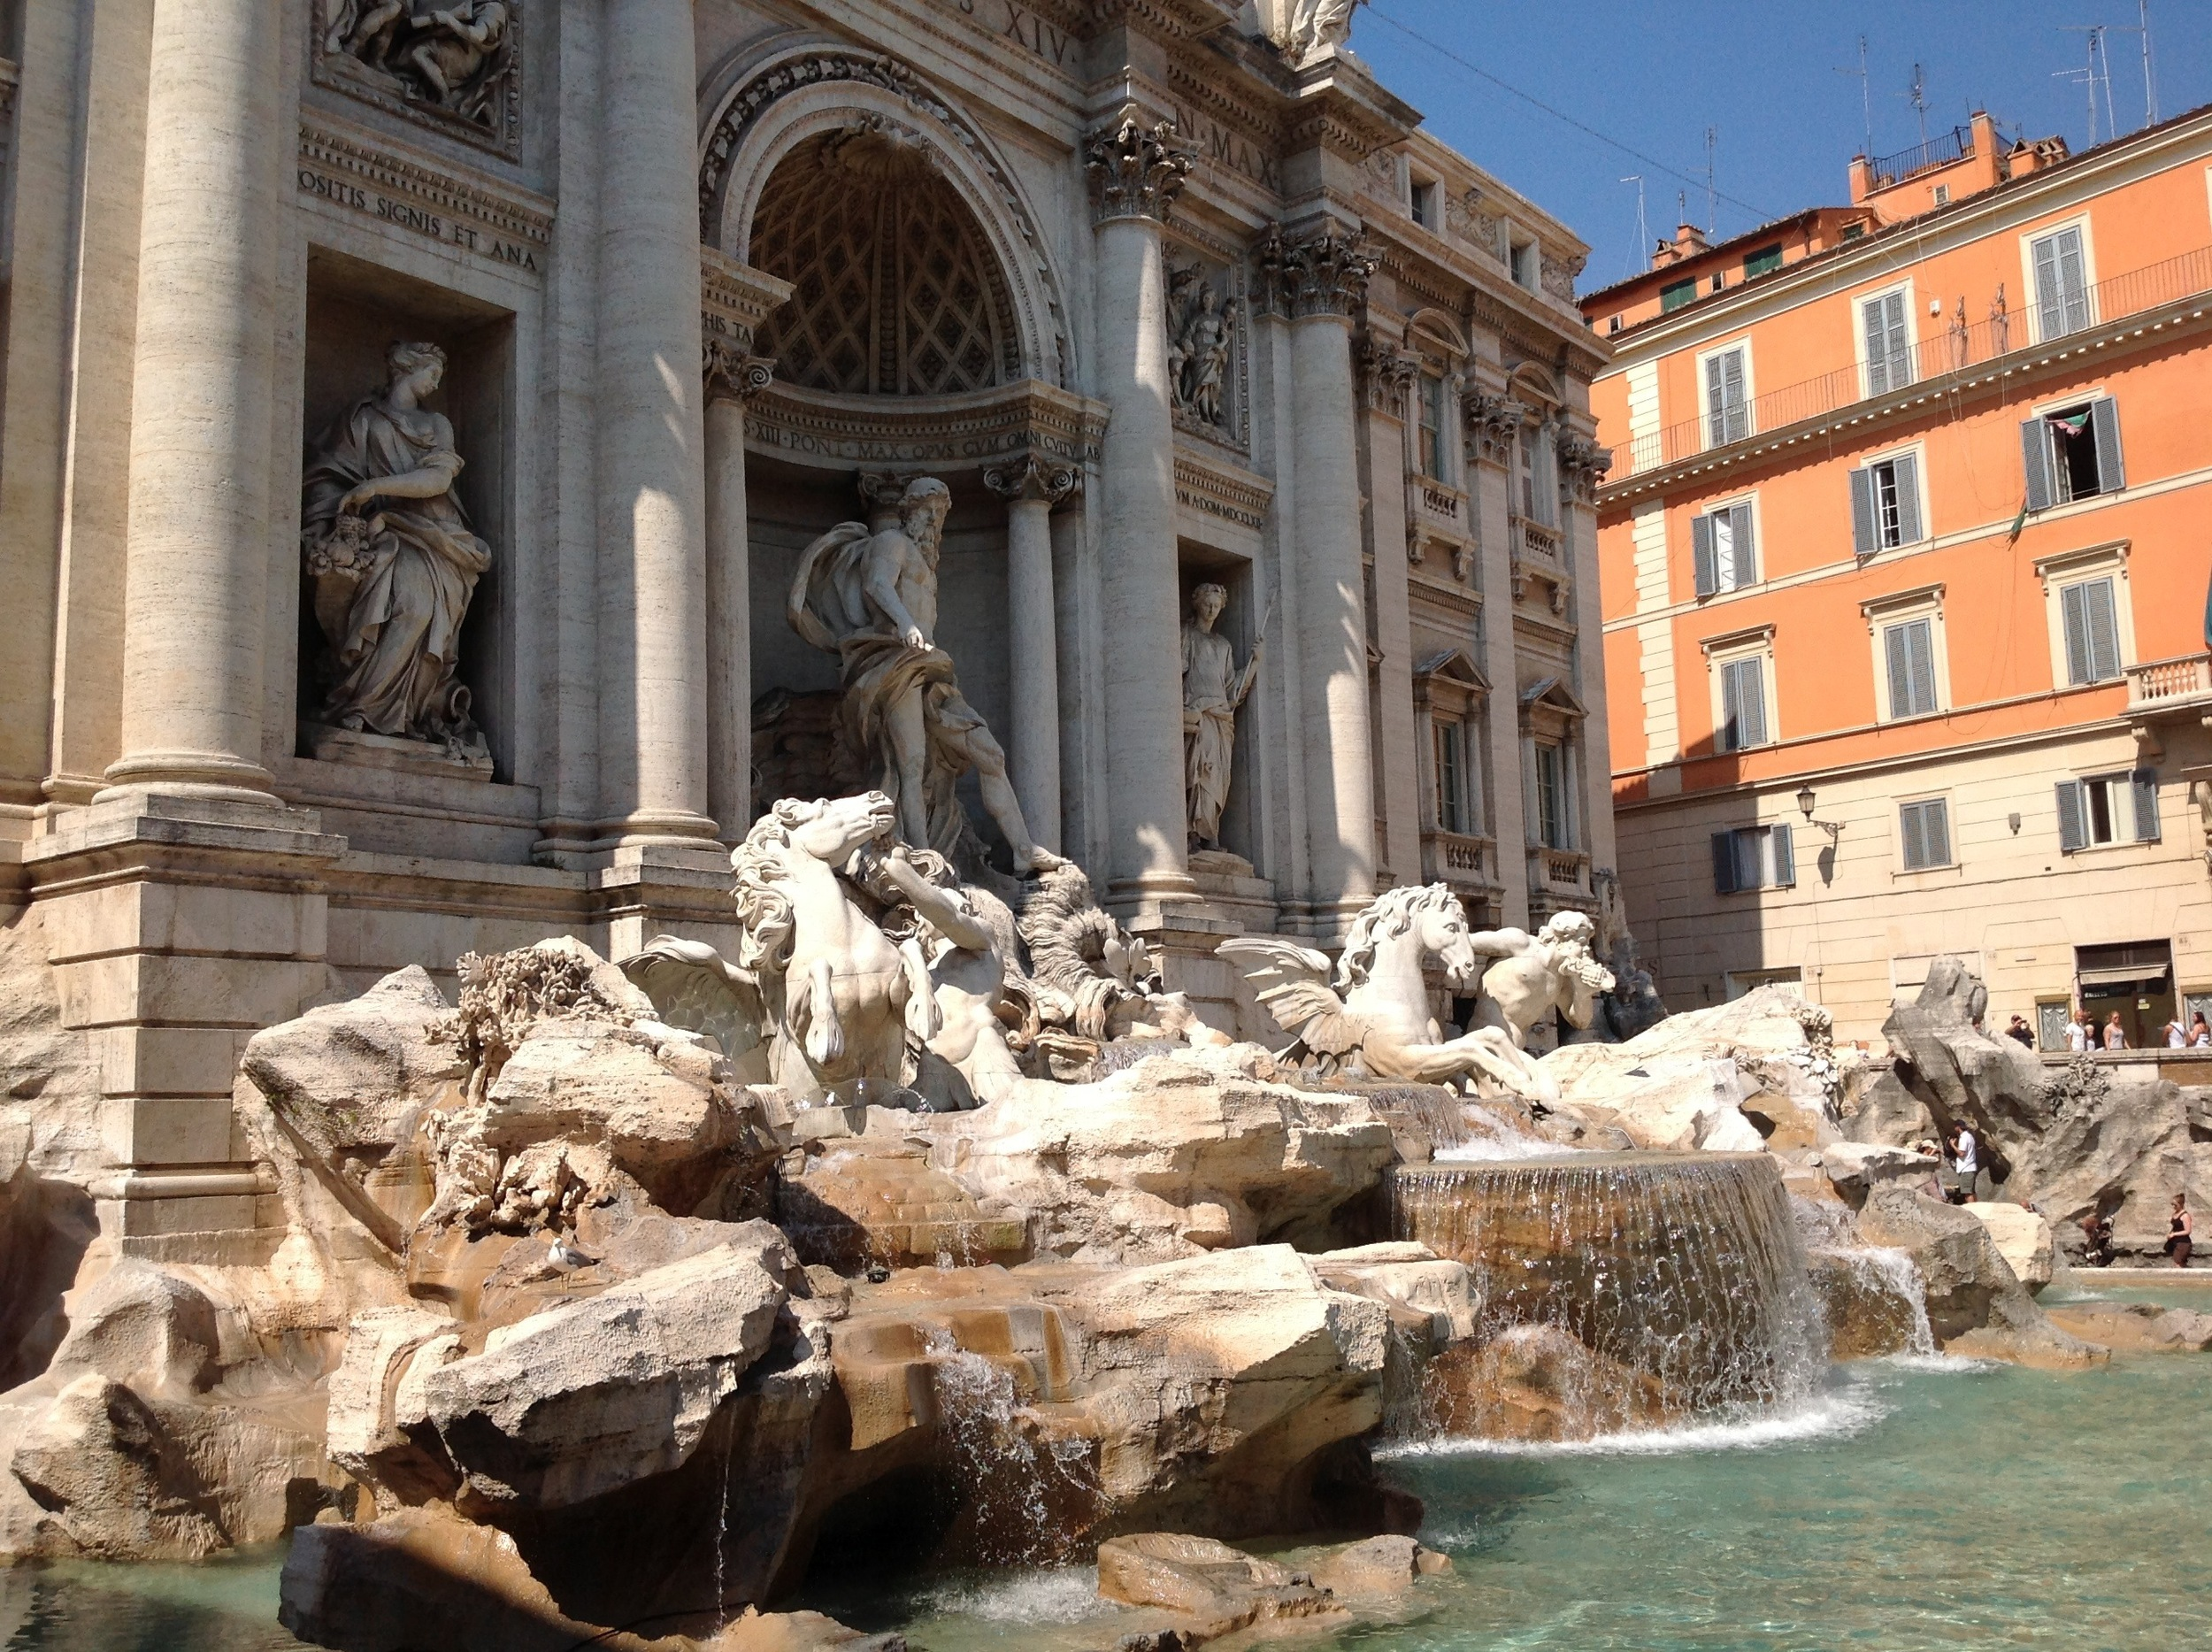 Il Fontana di Trevi / Trevi Fountain – by artist Nicola Salvi; construction began in 1732